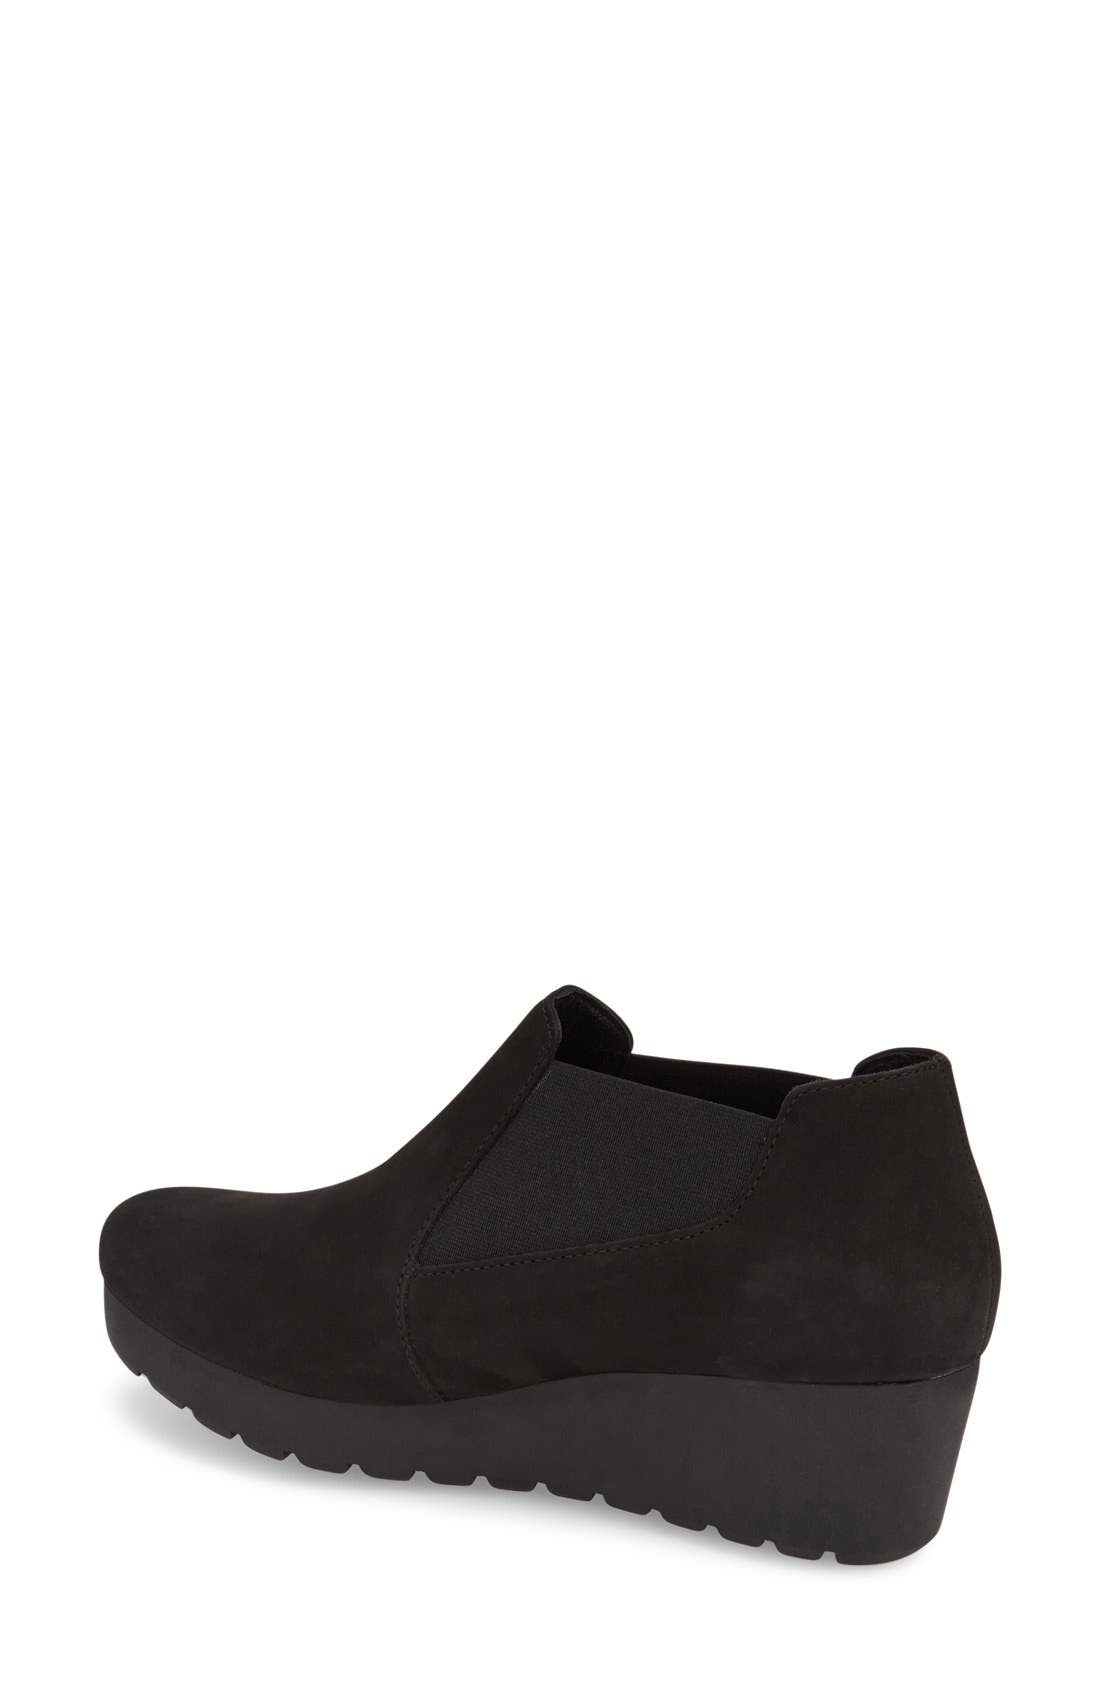 MEPHISTO, 'Tosca' Slip-On Wedge, Alternate thumbnail 3, color, BLACK NUBUCK LEATHER